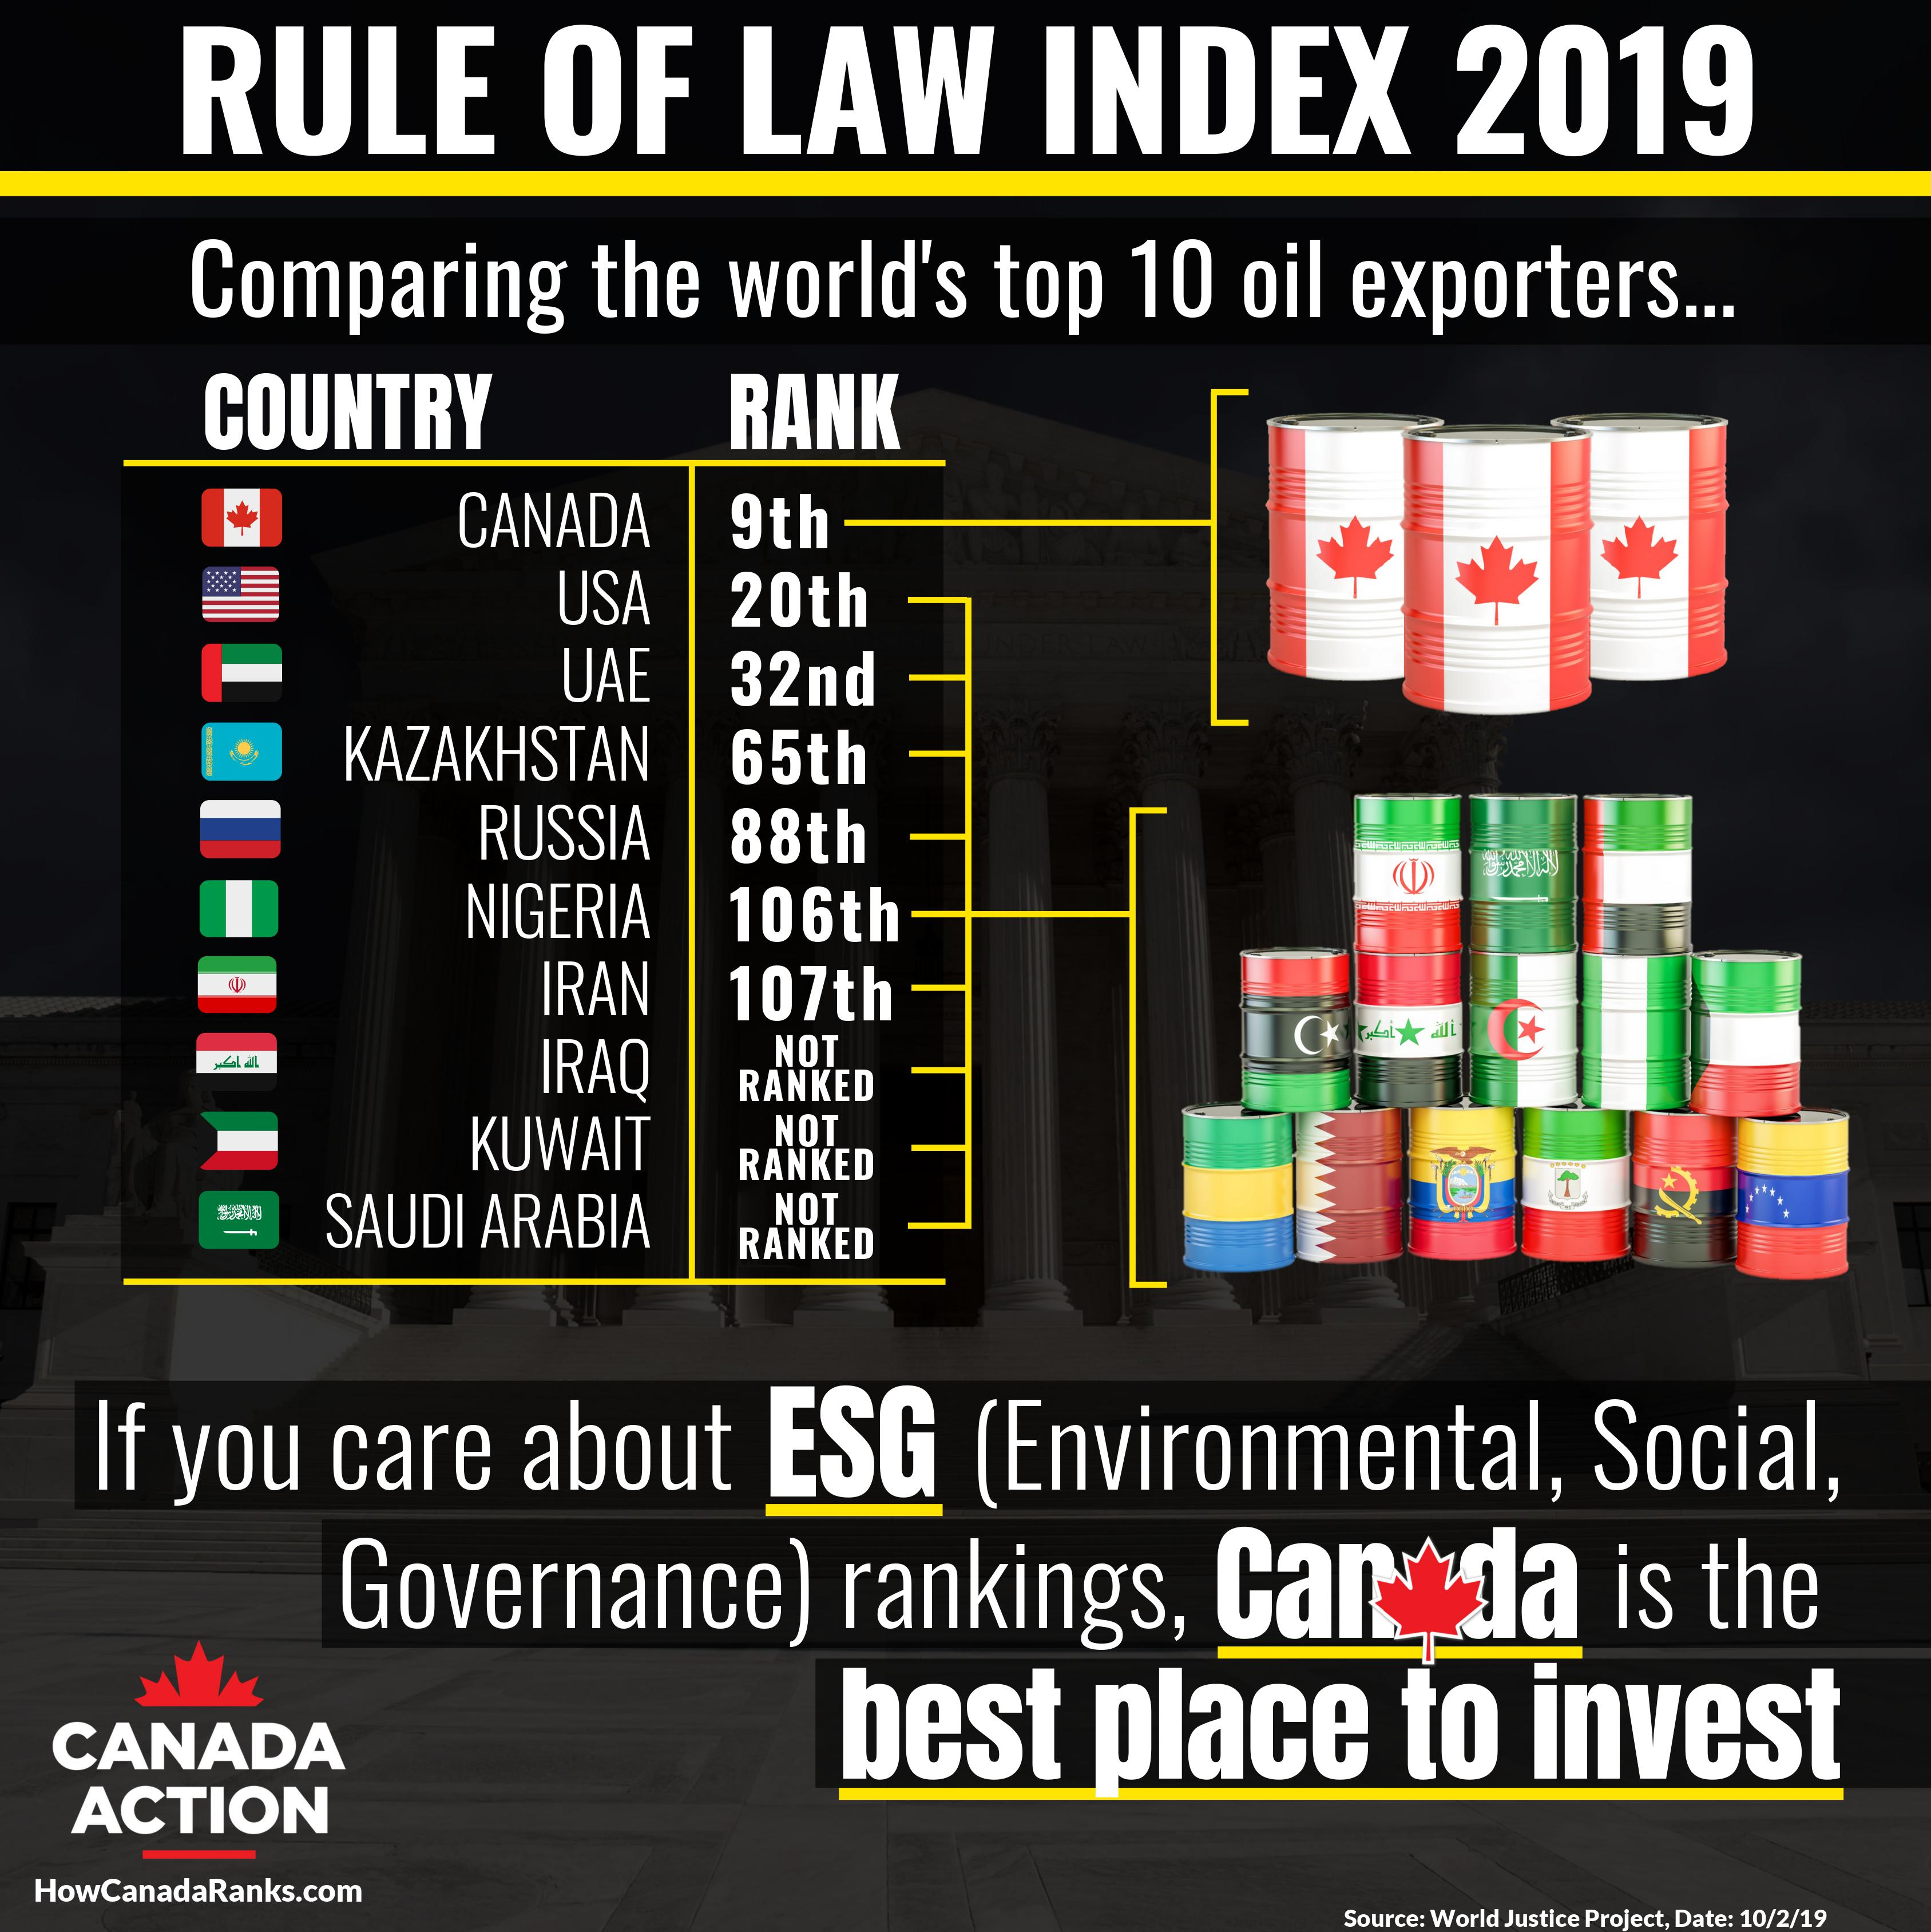 Canada Ranks 9th on Rule of Law Index 2019